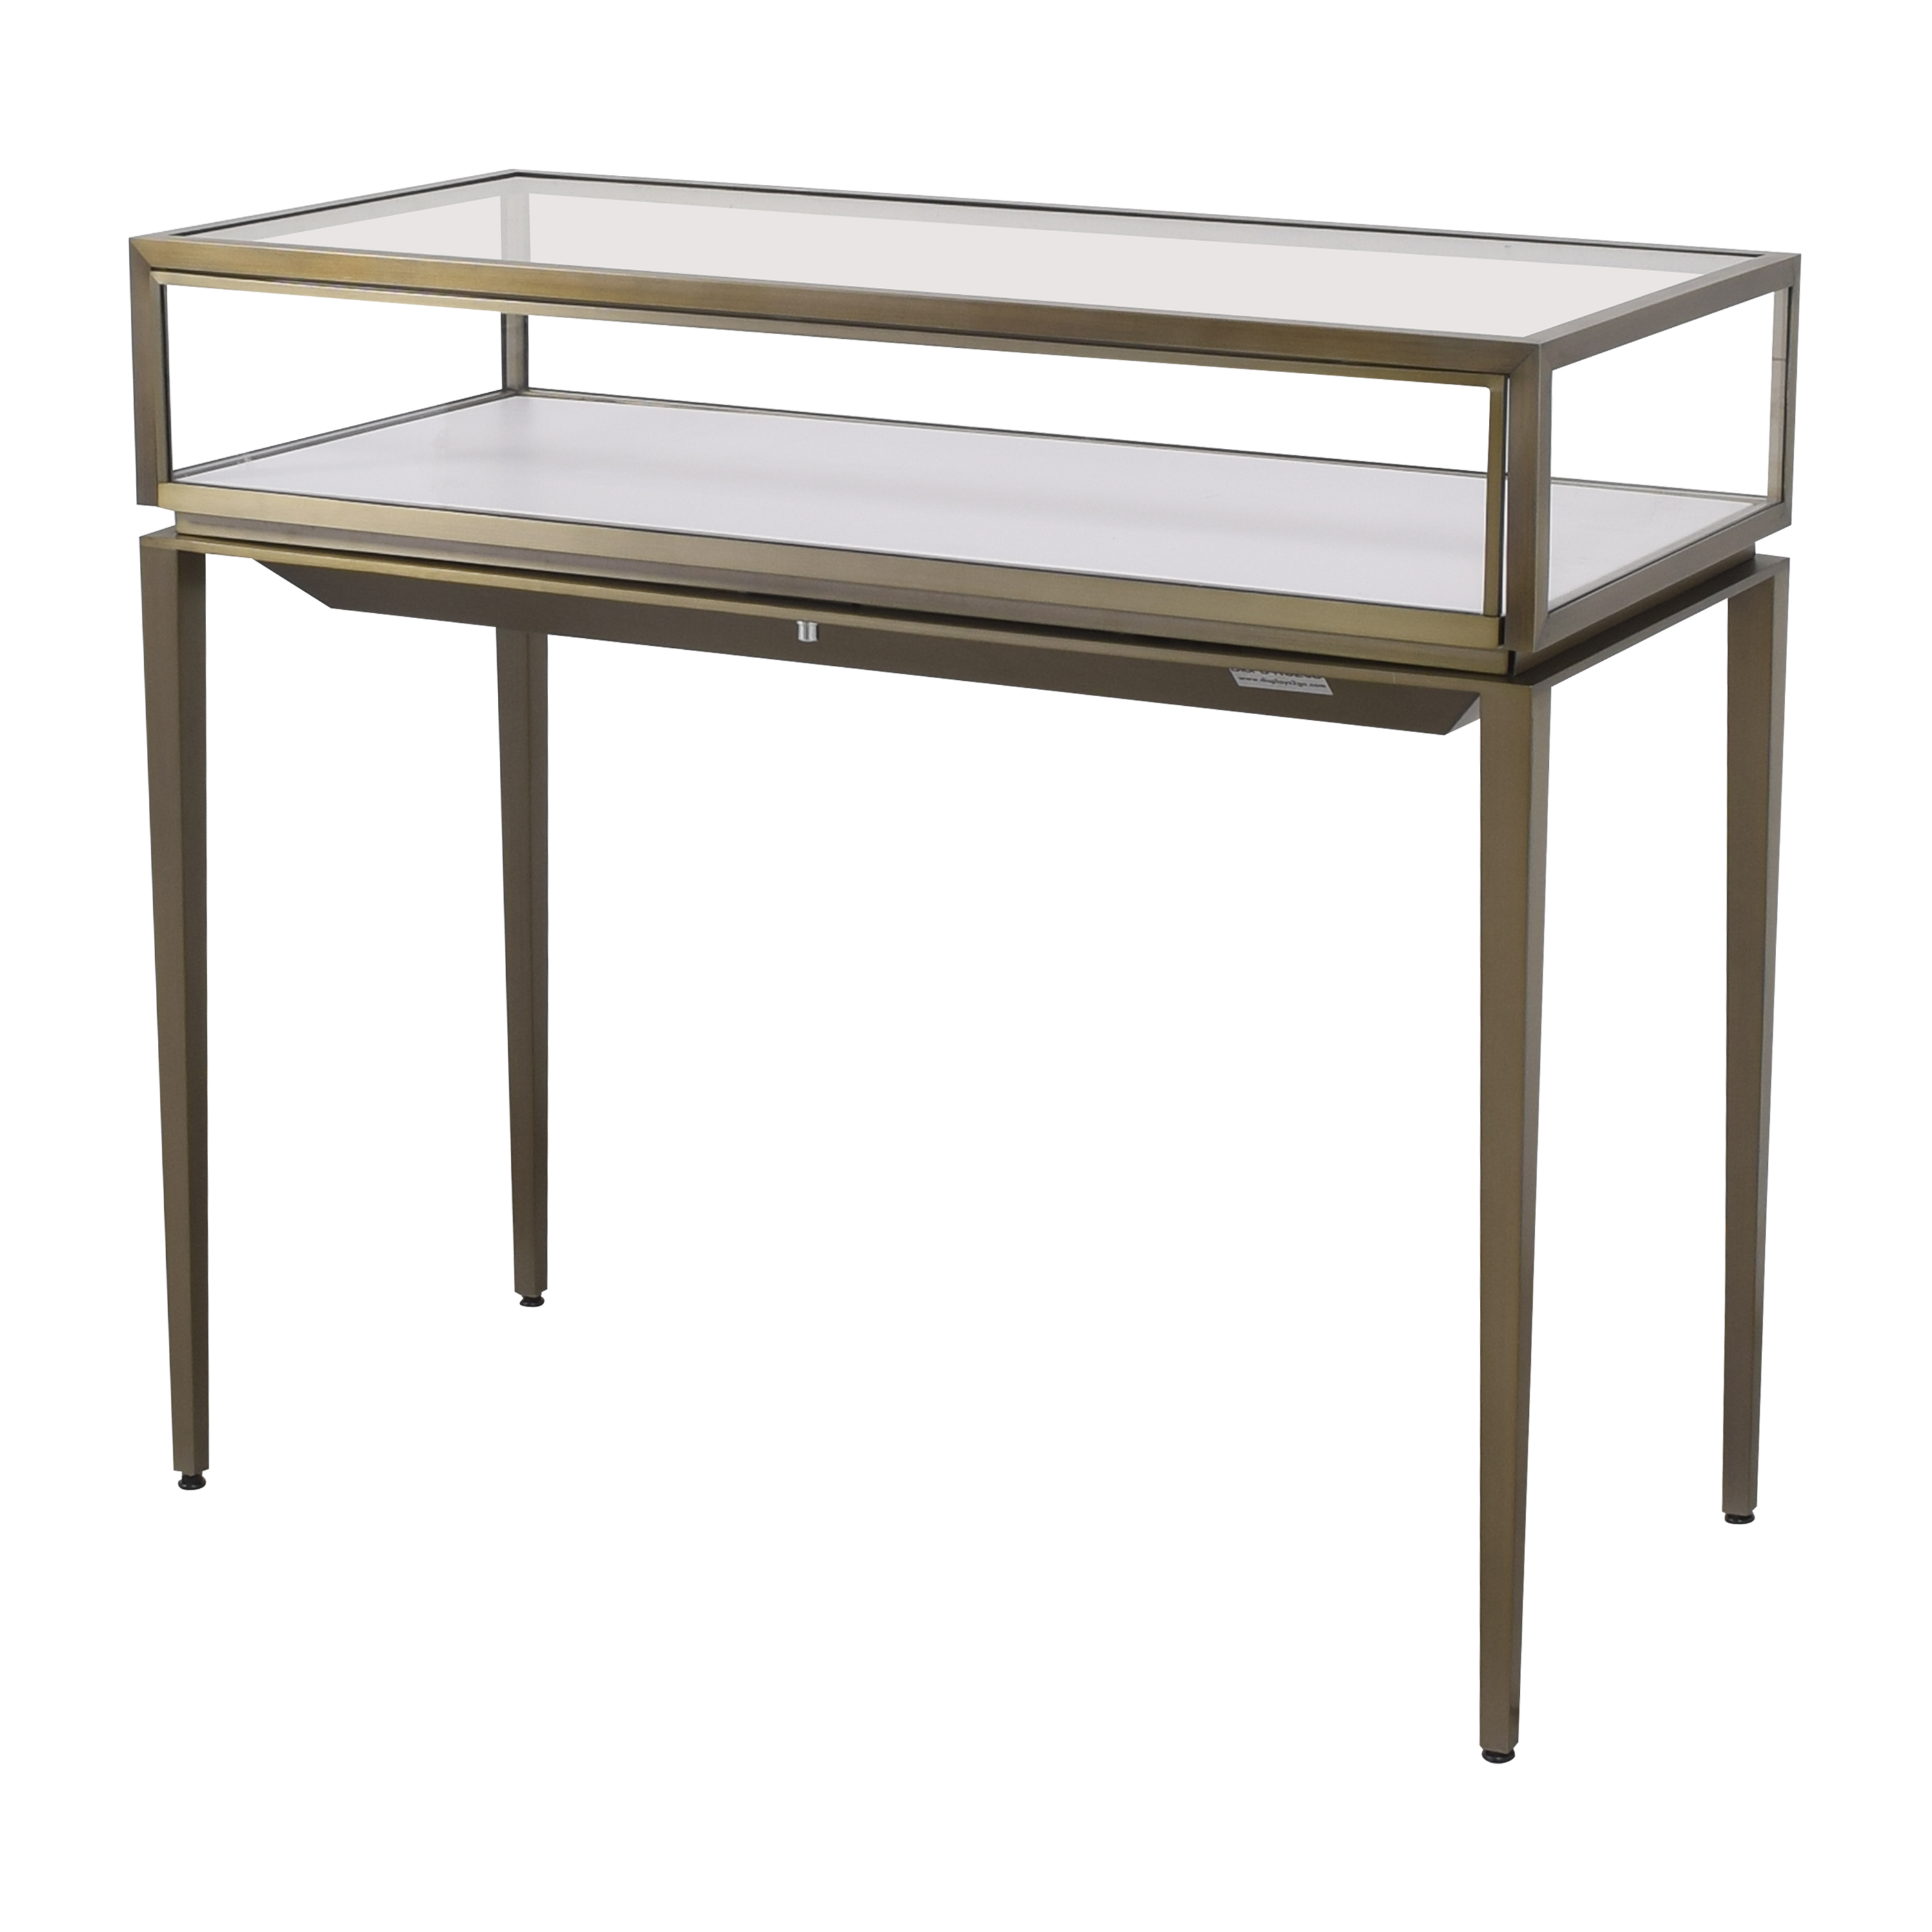 Displays2Go Displays2Go Lighted Display Table dark gold